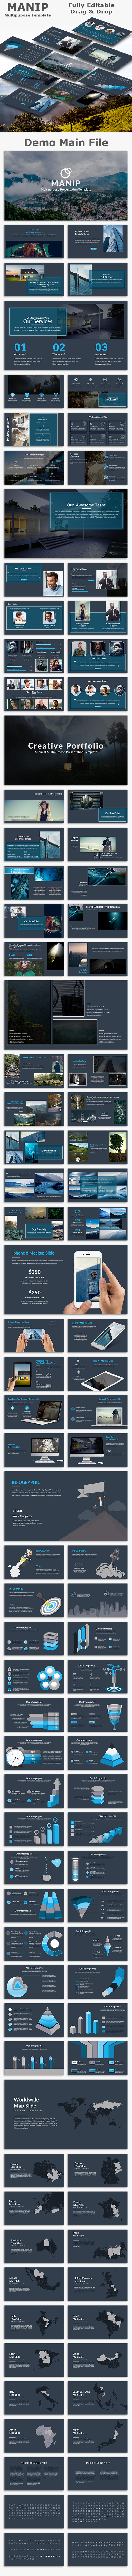 Manip Multipurpose PowerPoint Template - Creative PowerPoint Templates